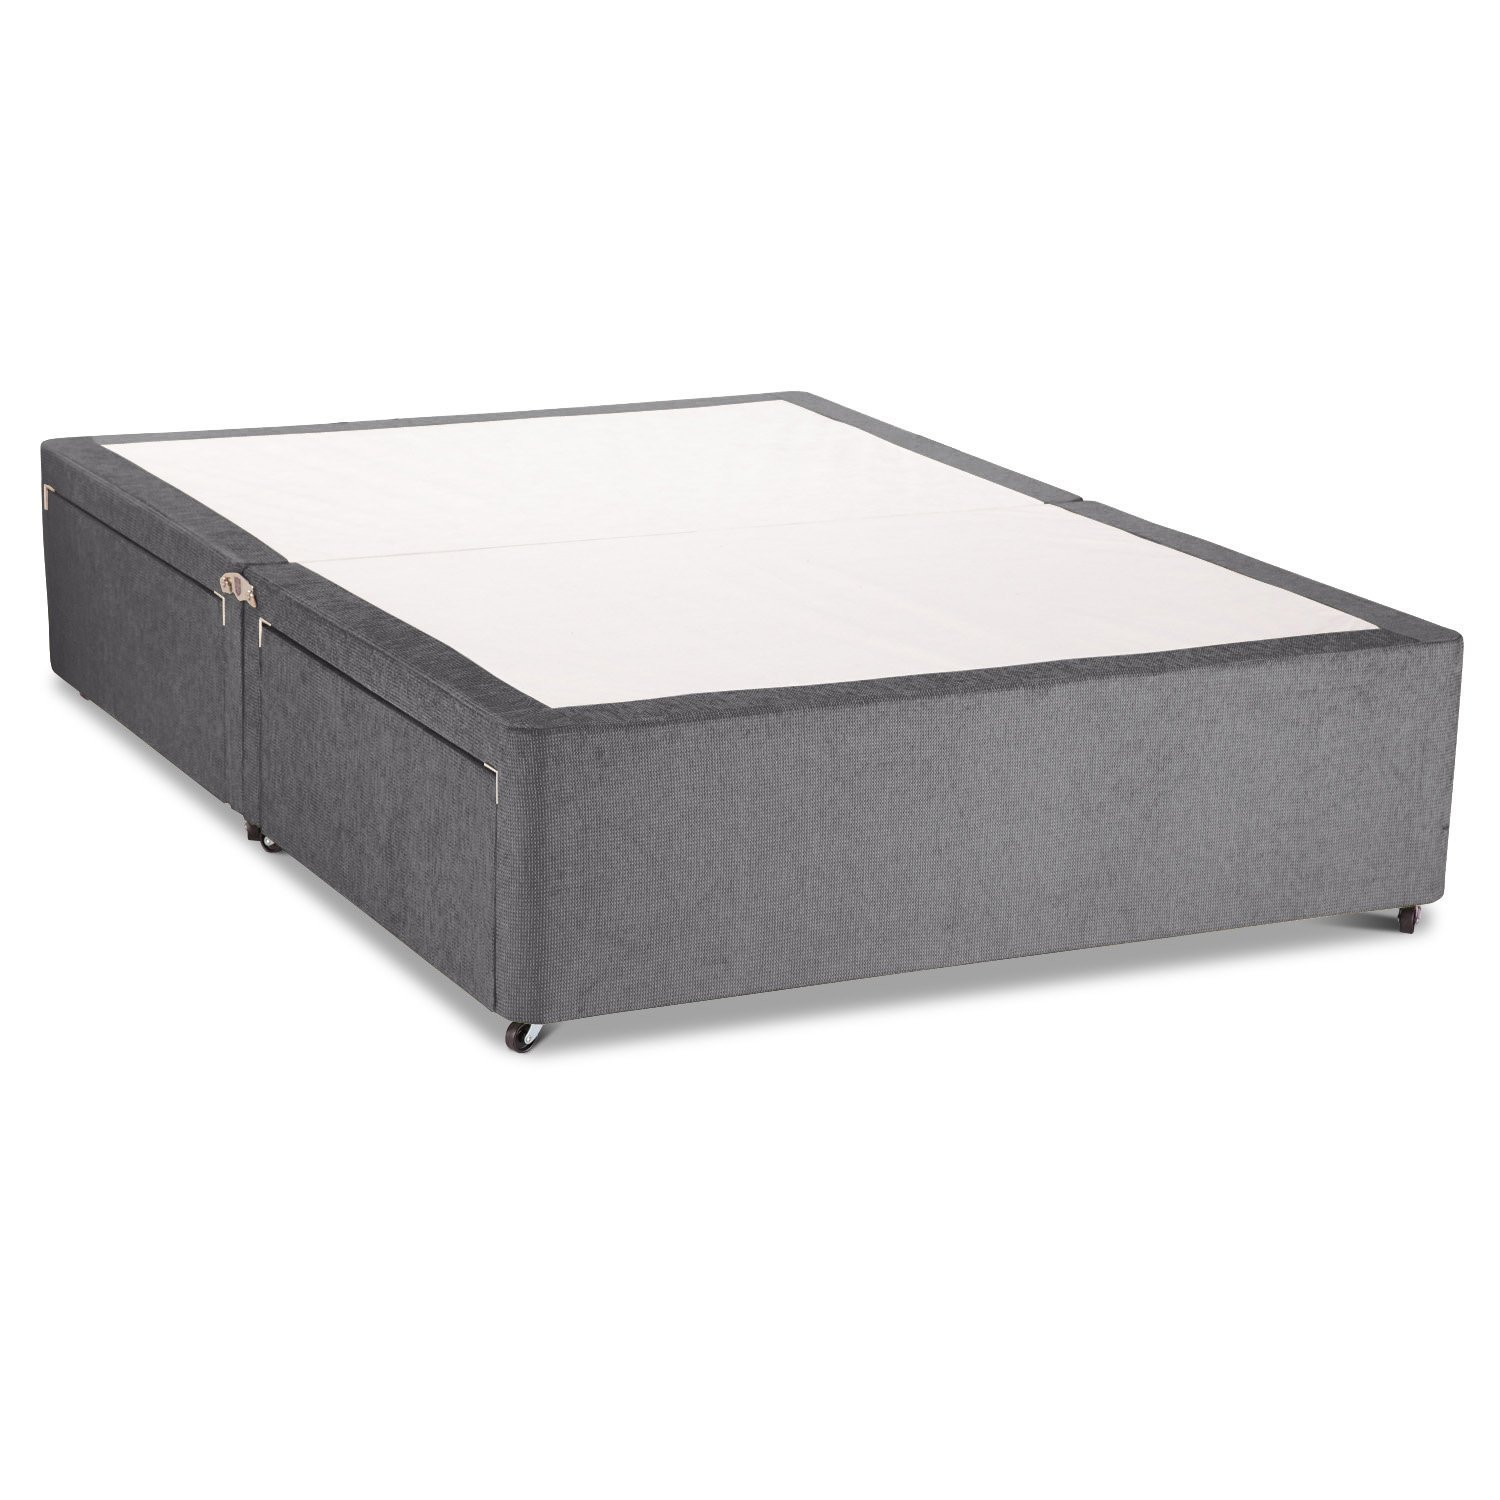 Chenille Fabric Divan Bed Base - Underbed Drawers Storage - 4FT6 Double Size -Choice of 13 Colours - 2 Drawers (CHARCOAL)